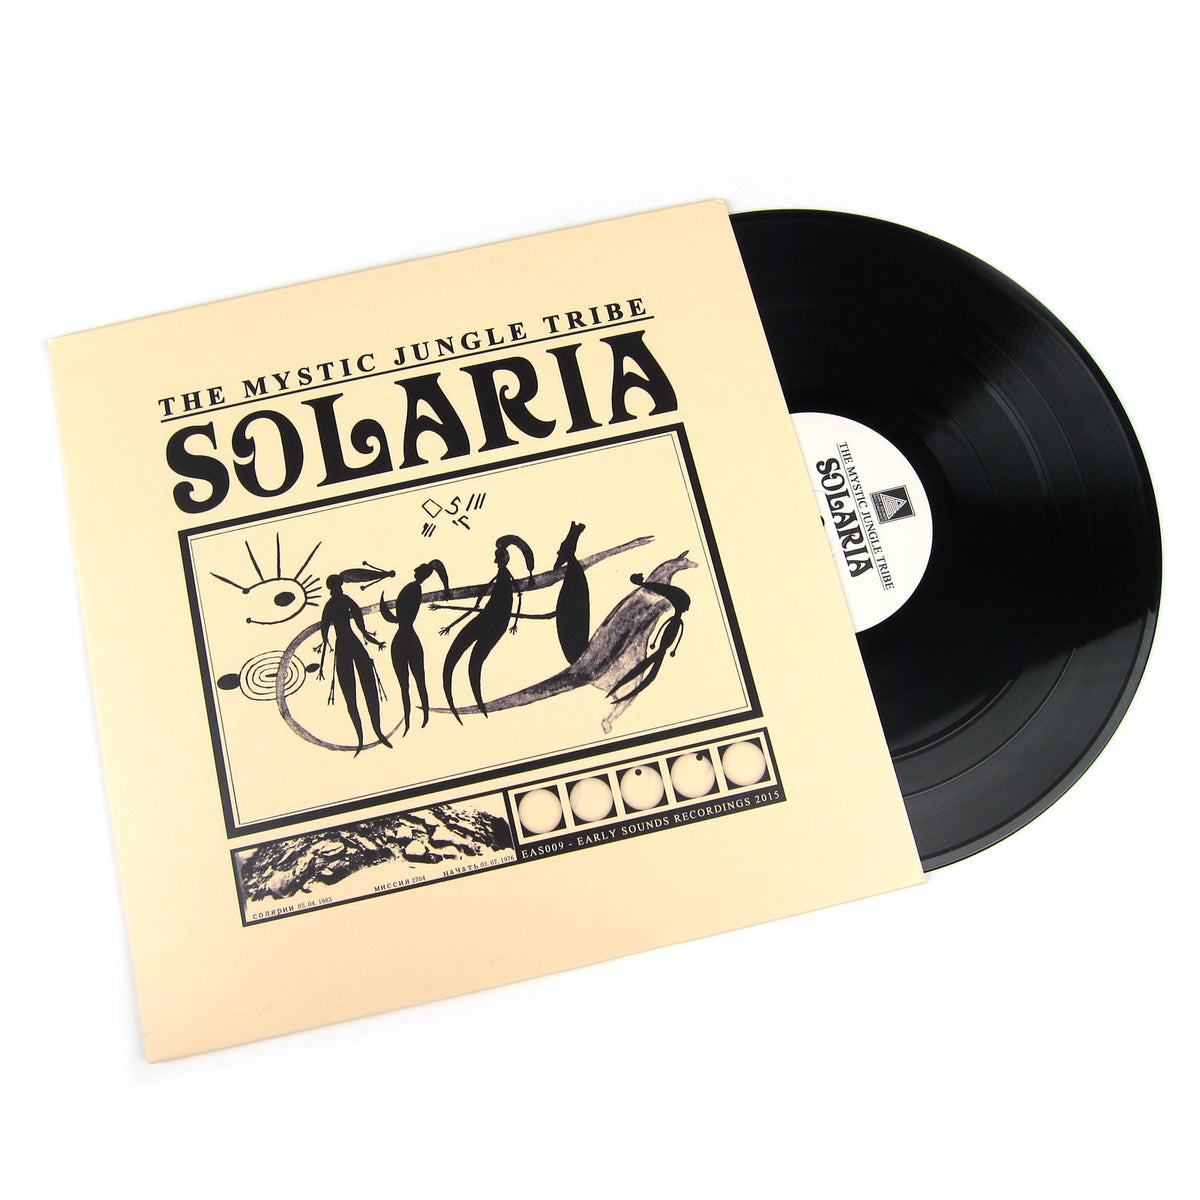 The Mystic Jungle Tribe: Solaria Vinyl LP